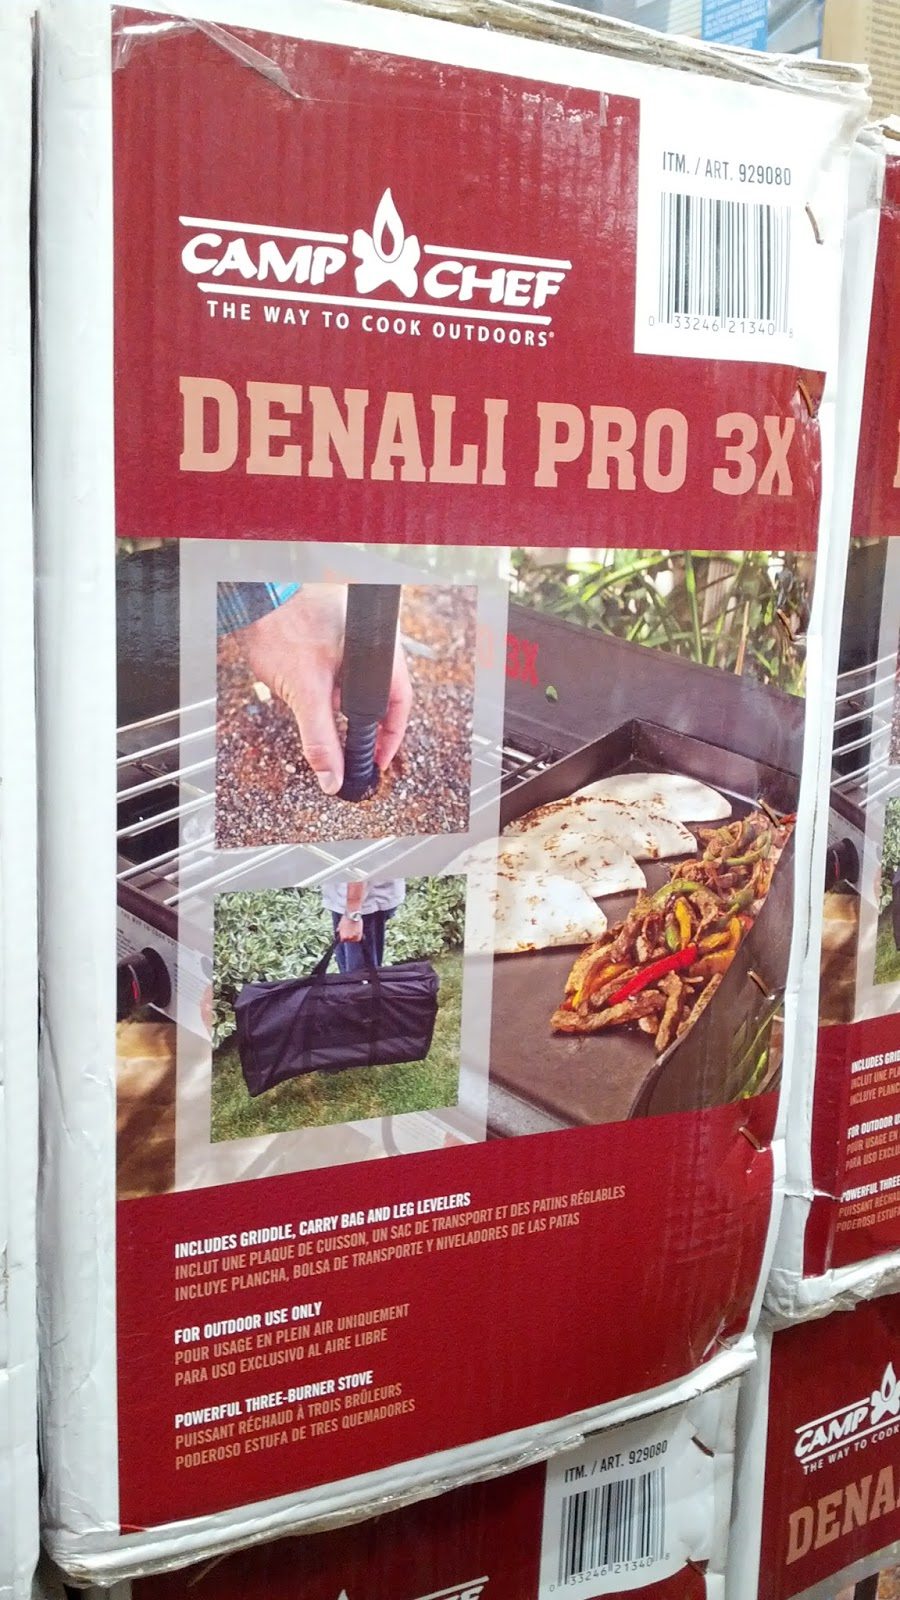 Denali Camp Stove Camp Chef Denali Pro 3x Propane Burner Stove With Griddle Costco